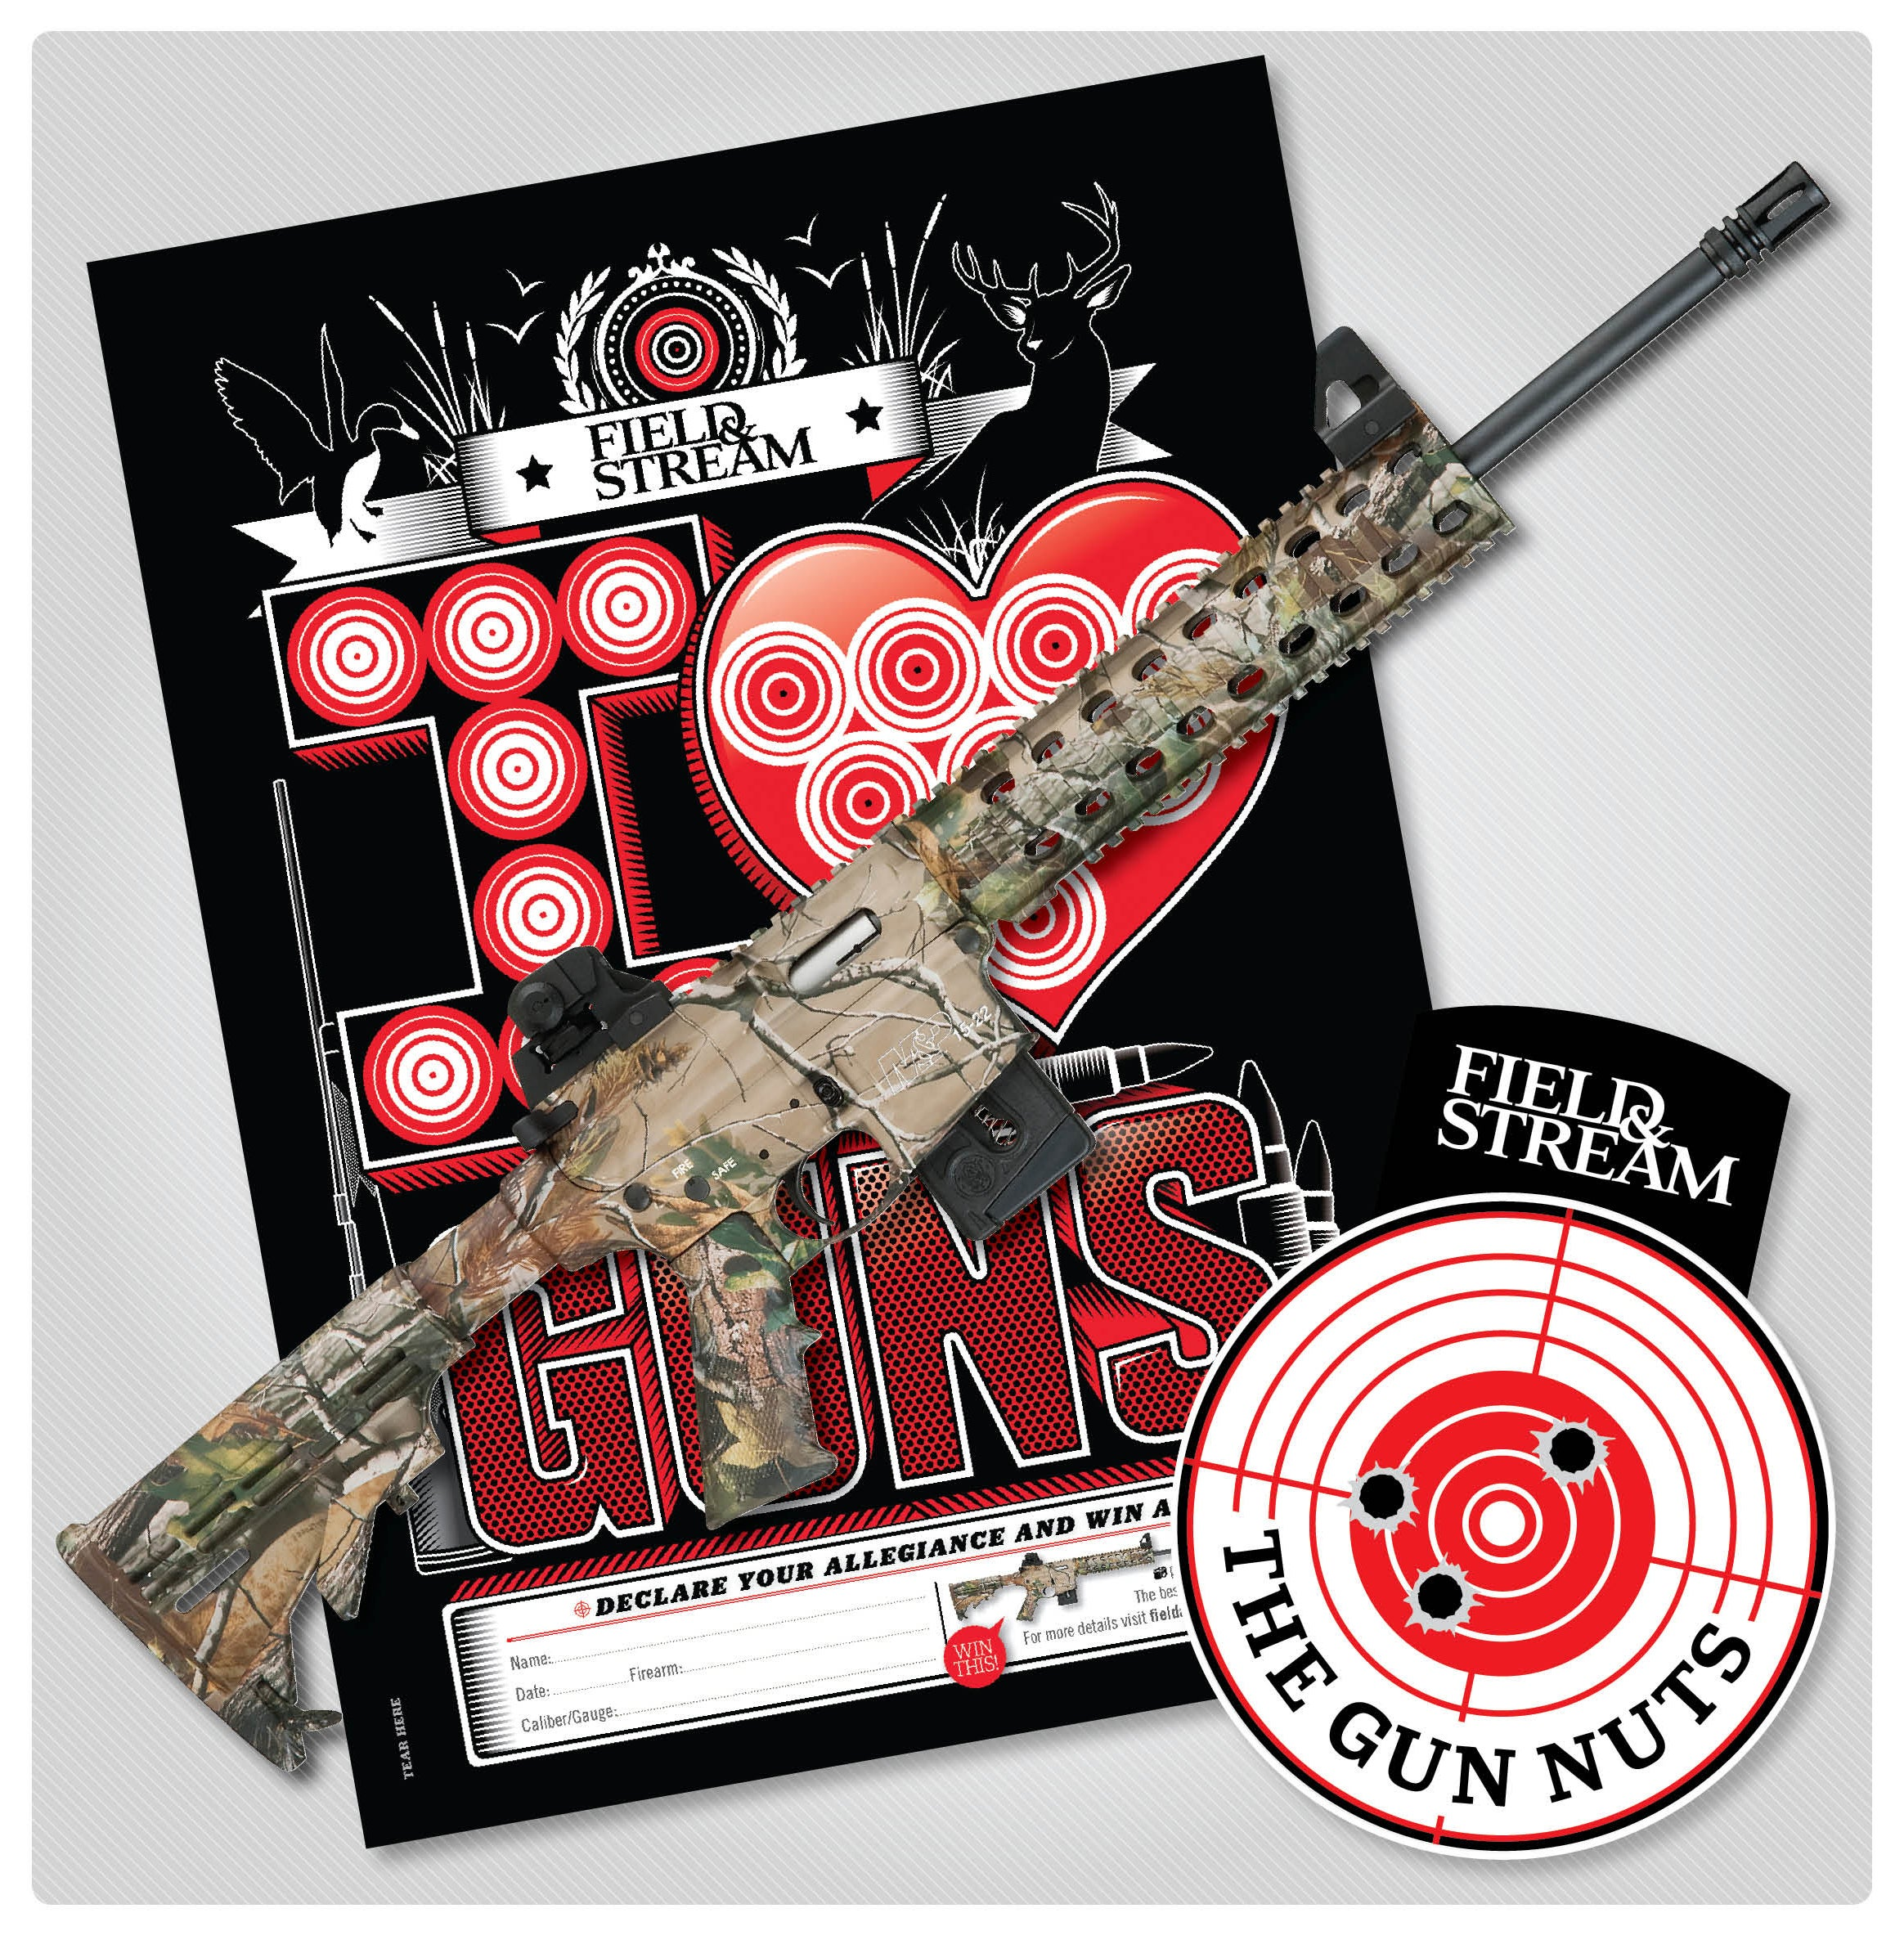 Announcing the 2011 Gun Nut Target Photo Contest